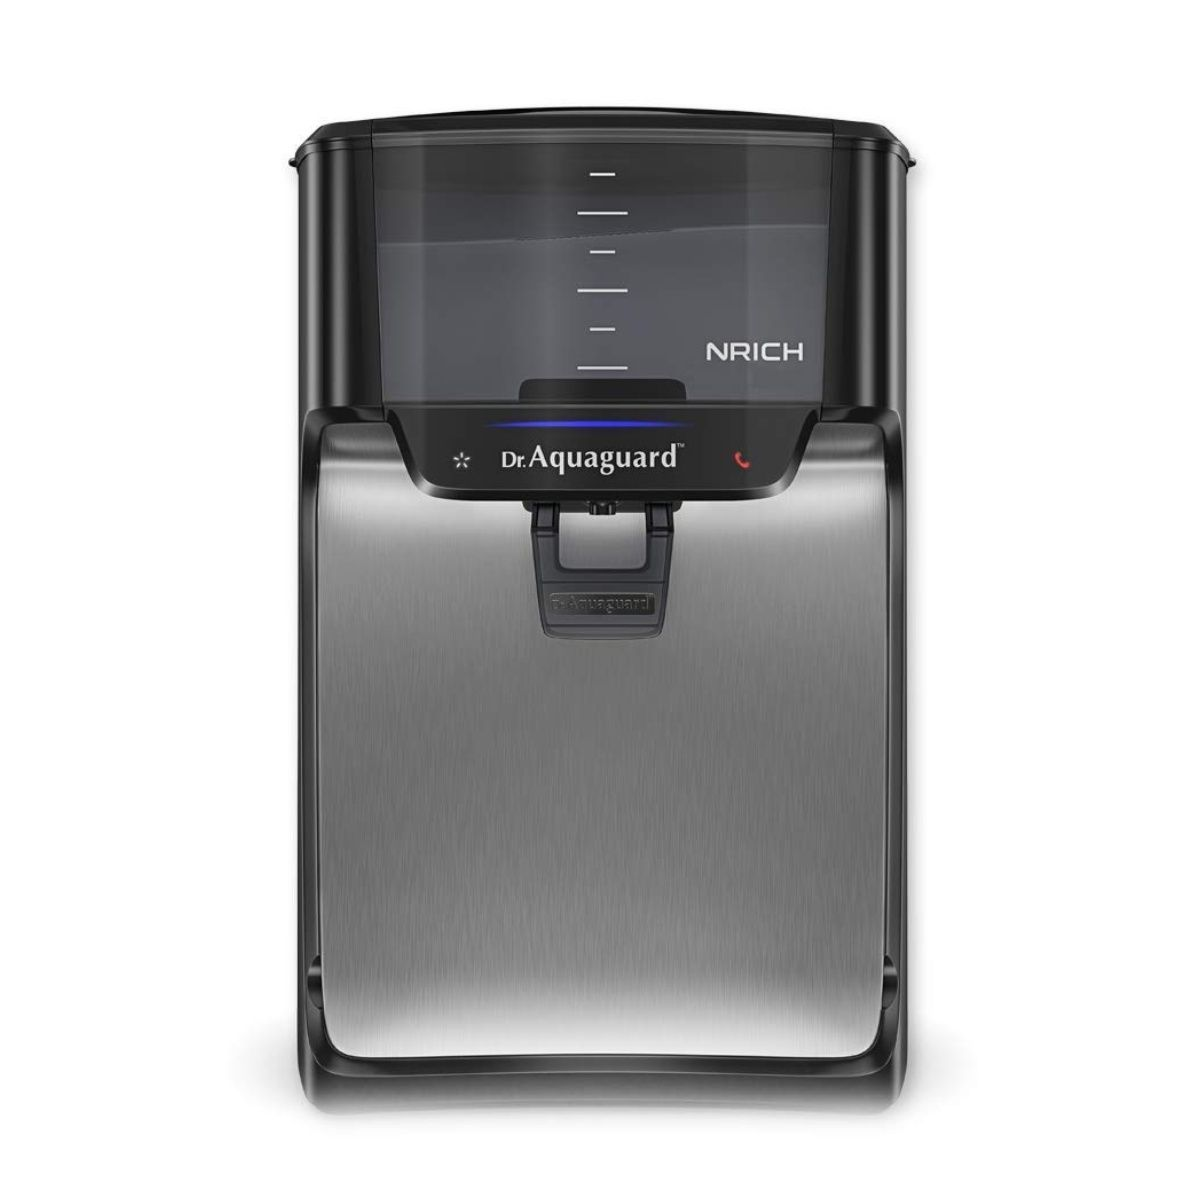 Dr. Aquaguard Nrich HD with Copper Maxx 7 L RO Water Purifier